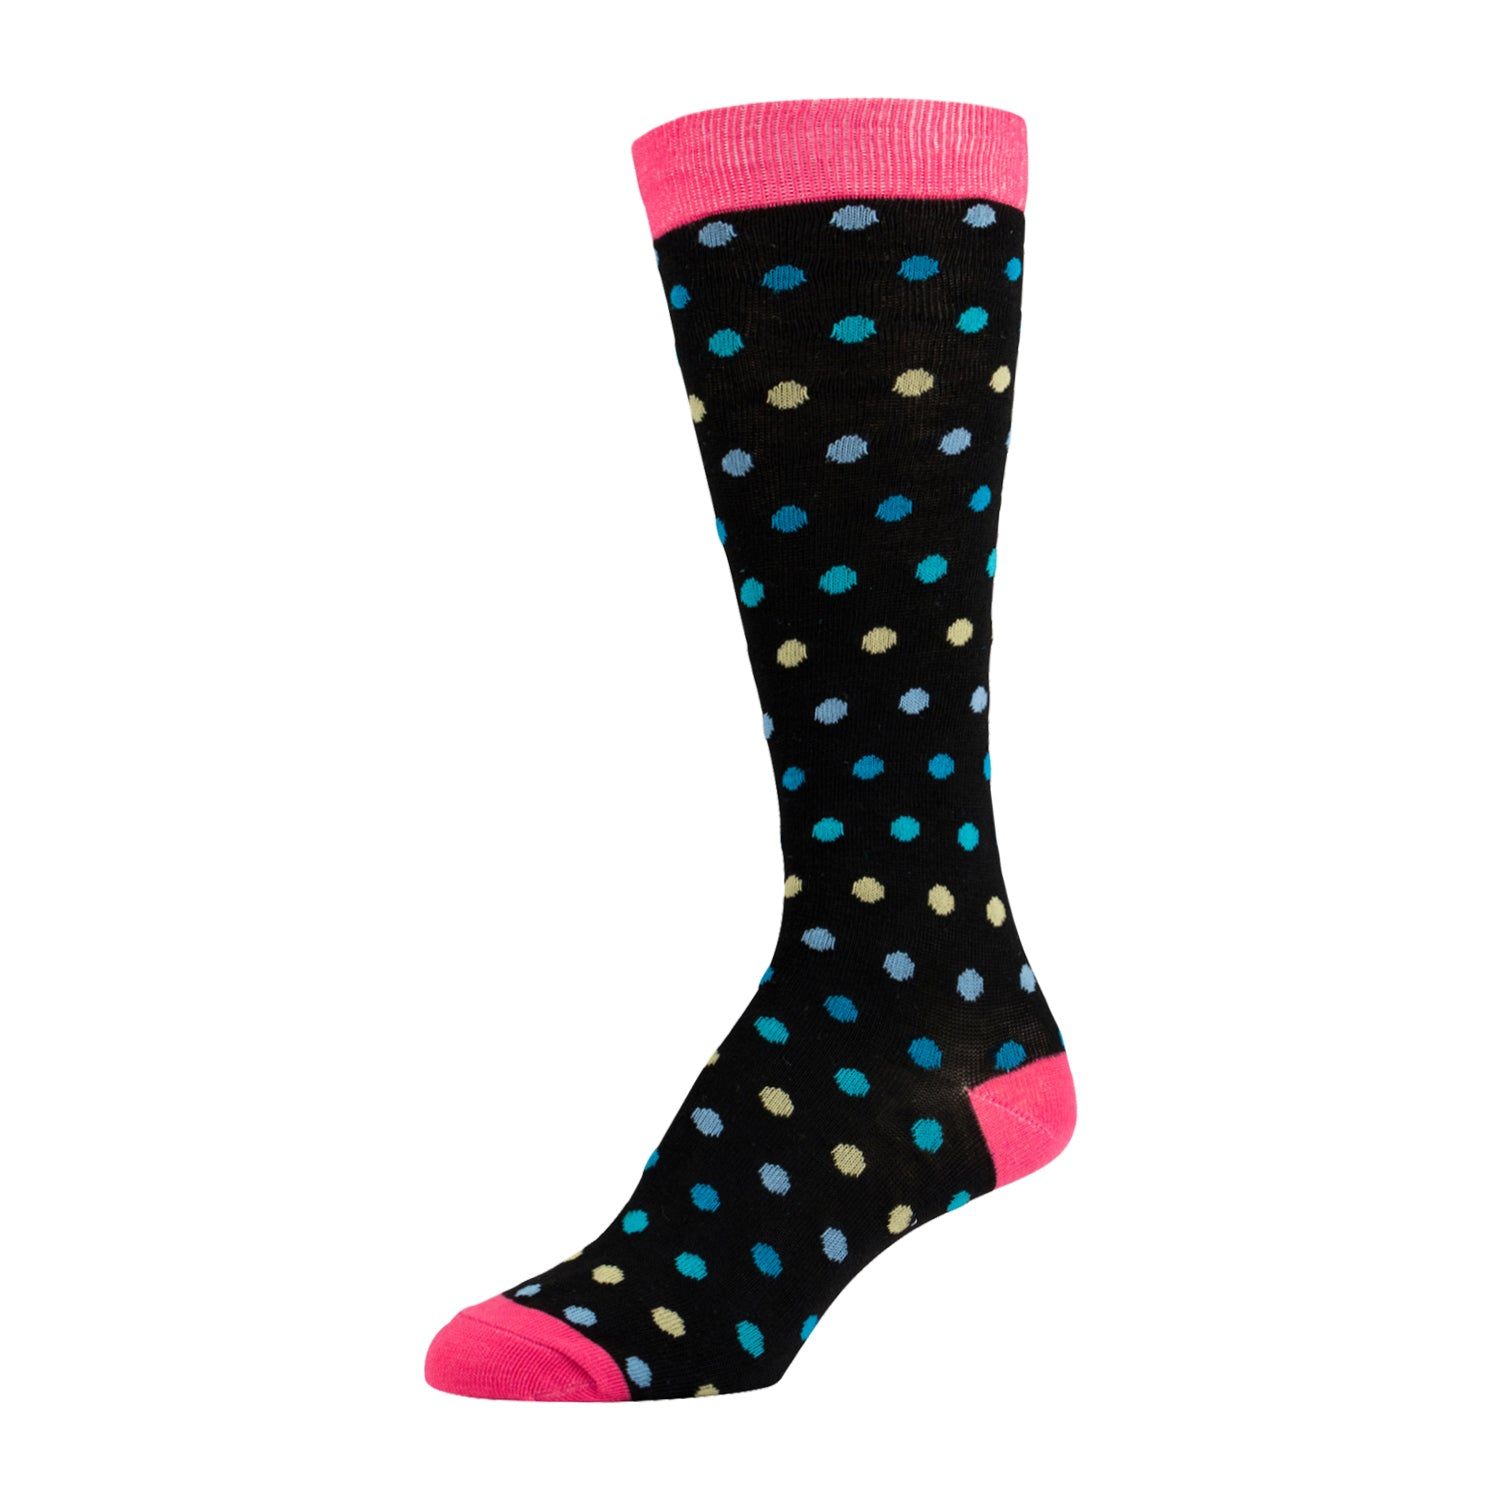 Multicolor Dotted Knee High Sock With Pink Heel and Toe